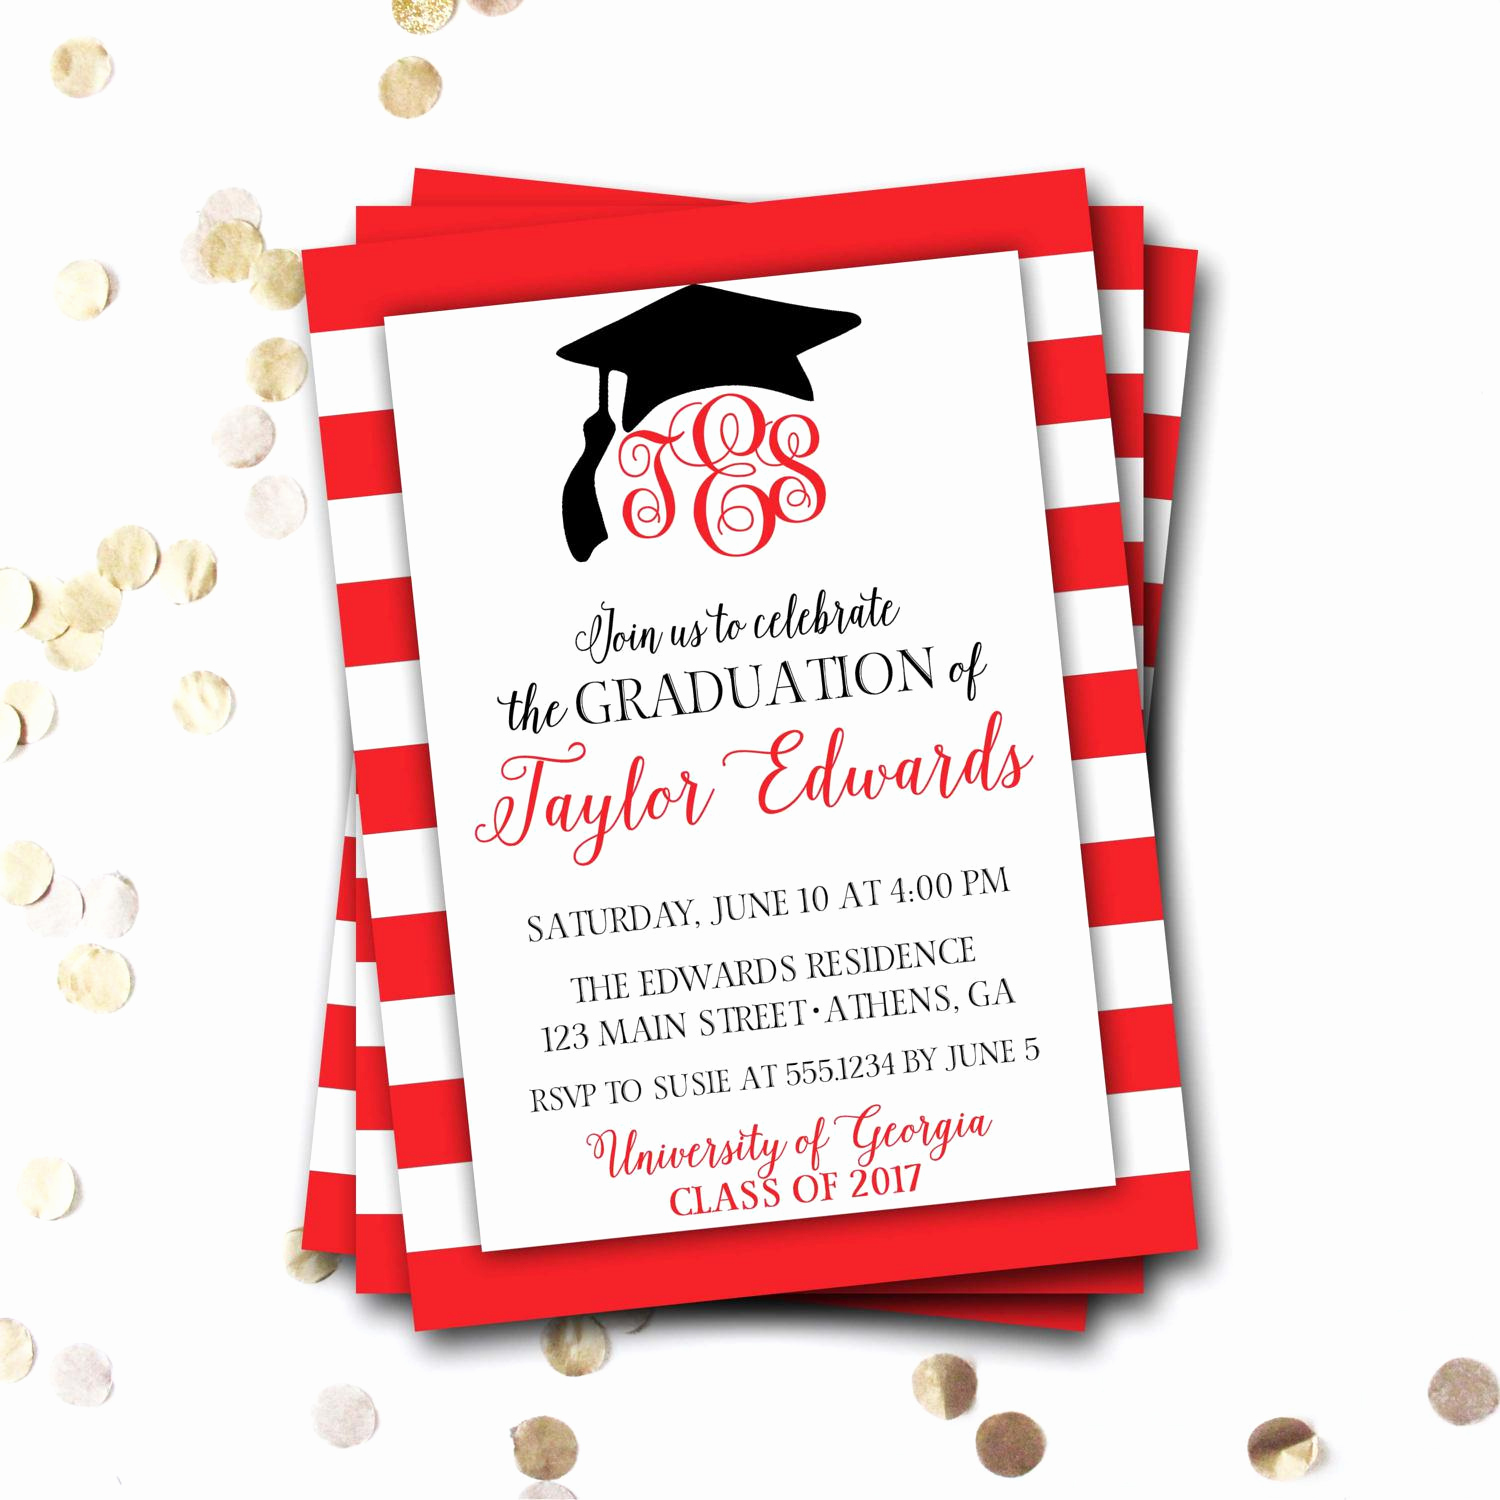 Graduation Invitation Card Ideas Inspirational Graduation Invitation Graduation Invitation Cards